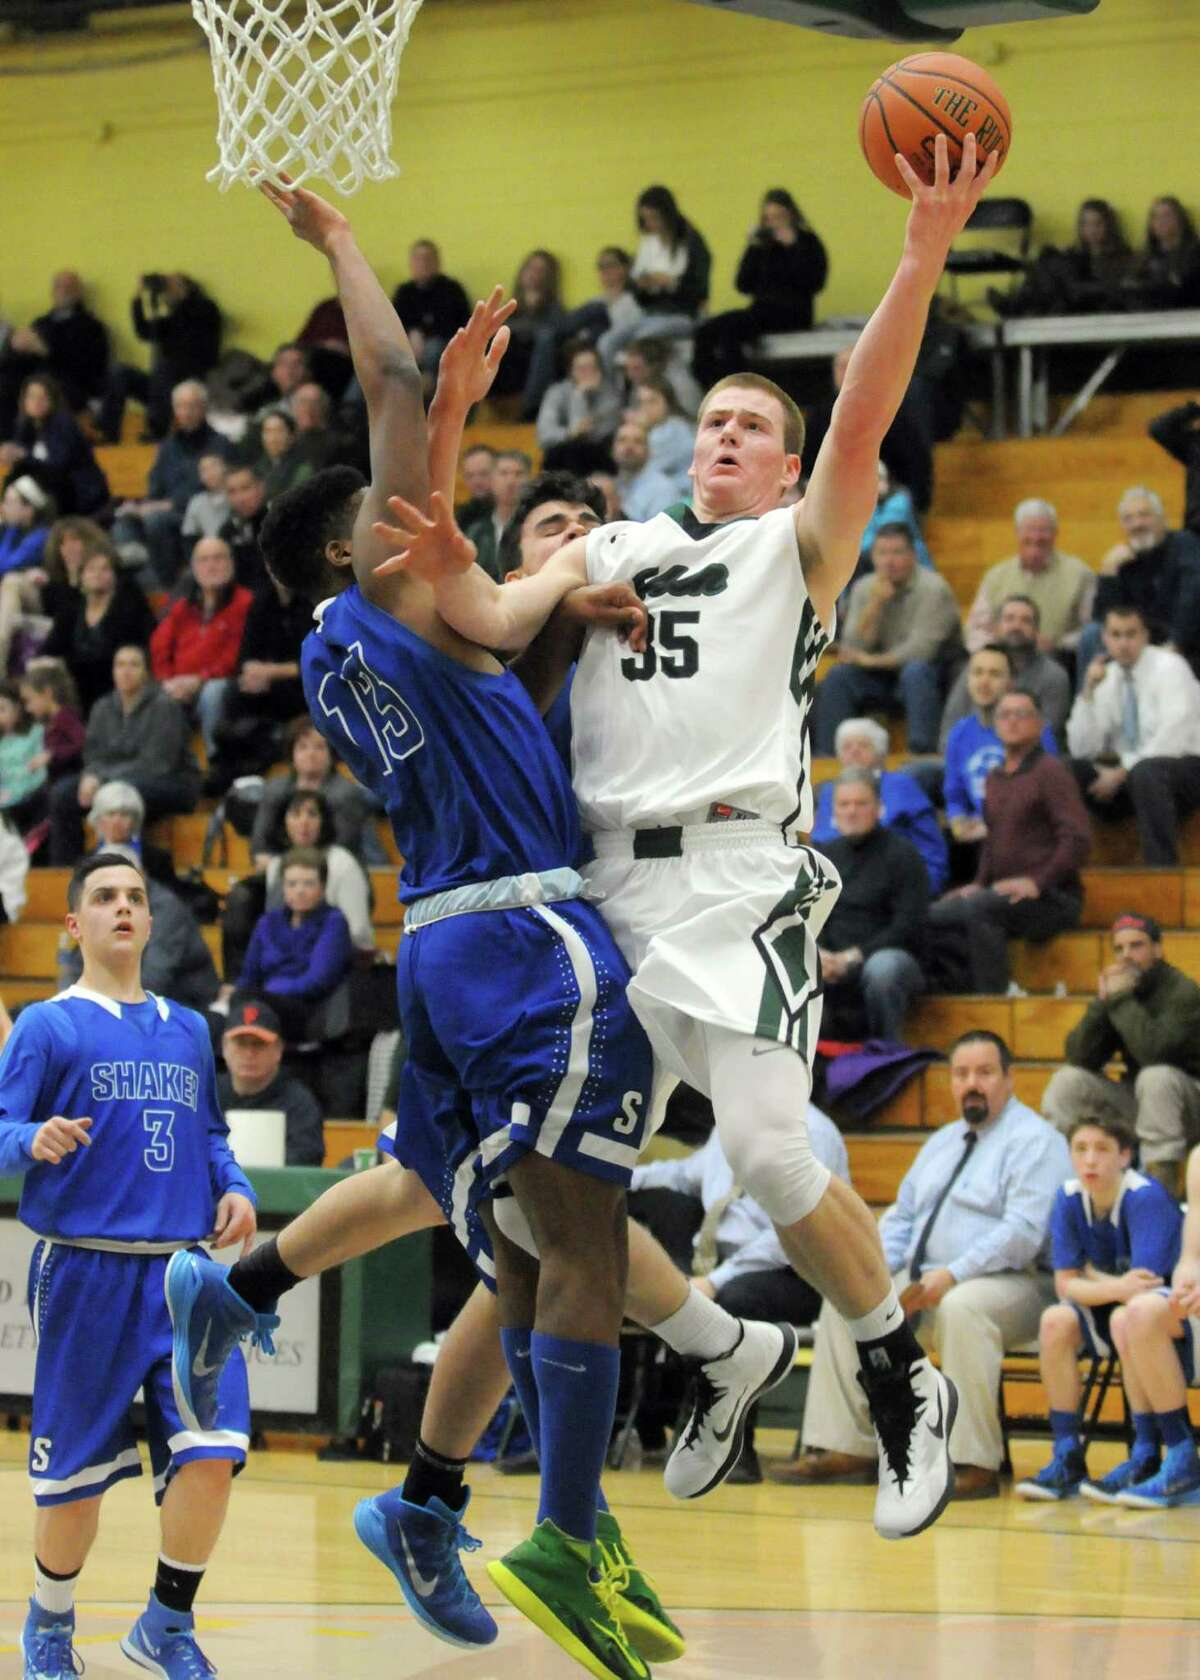 Shenendehowa's Brandon Fischer goes in for a basket during their boy's high school basketball game against Shaker at Siena College on Tuesday Feb. 10, 2015 in Loudonville ,N.Y. (Michael P. Farrell/Times Union)